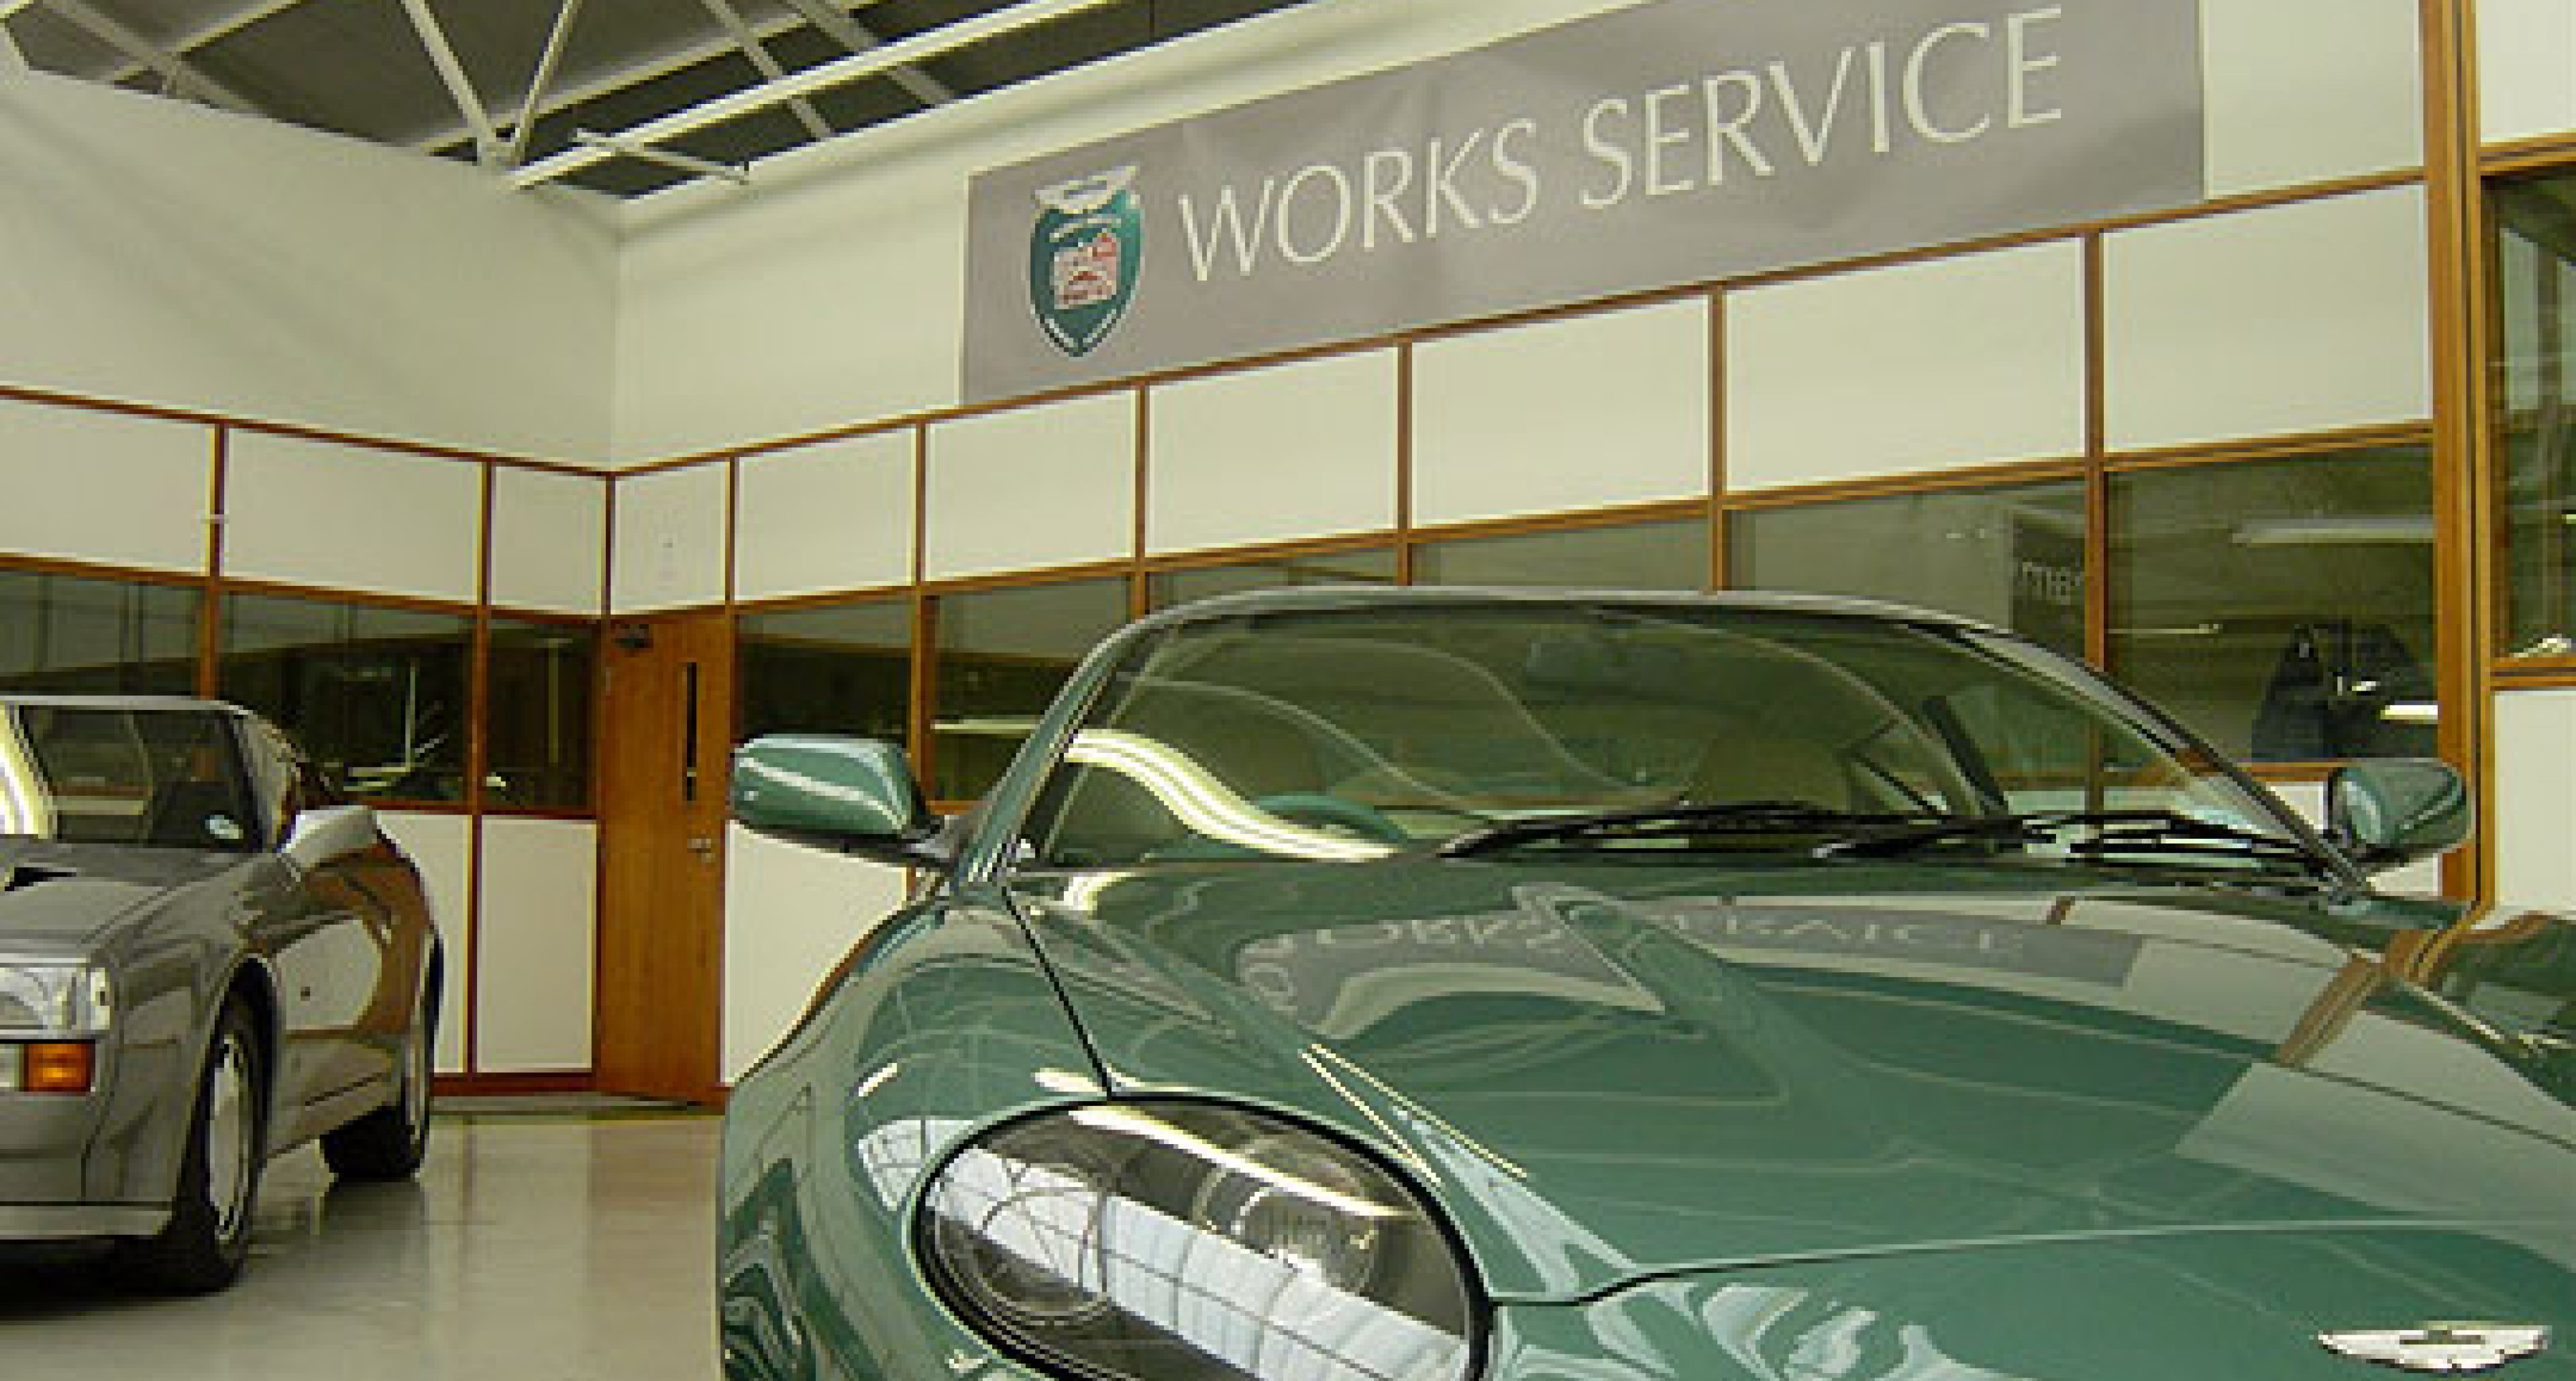 Bonhams Aston Martin Sale at Newport Pagnell -  13th May 2006 - Review